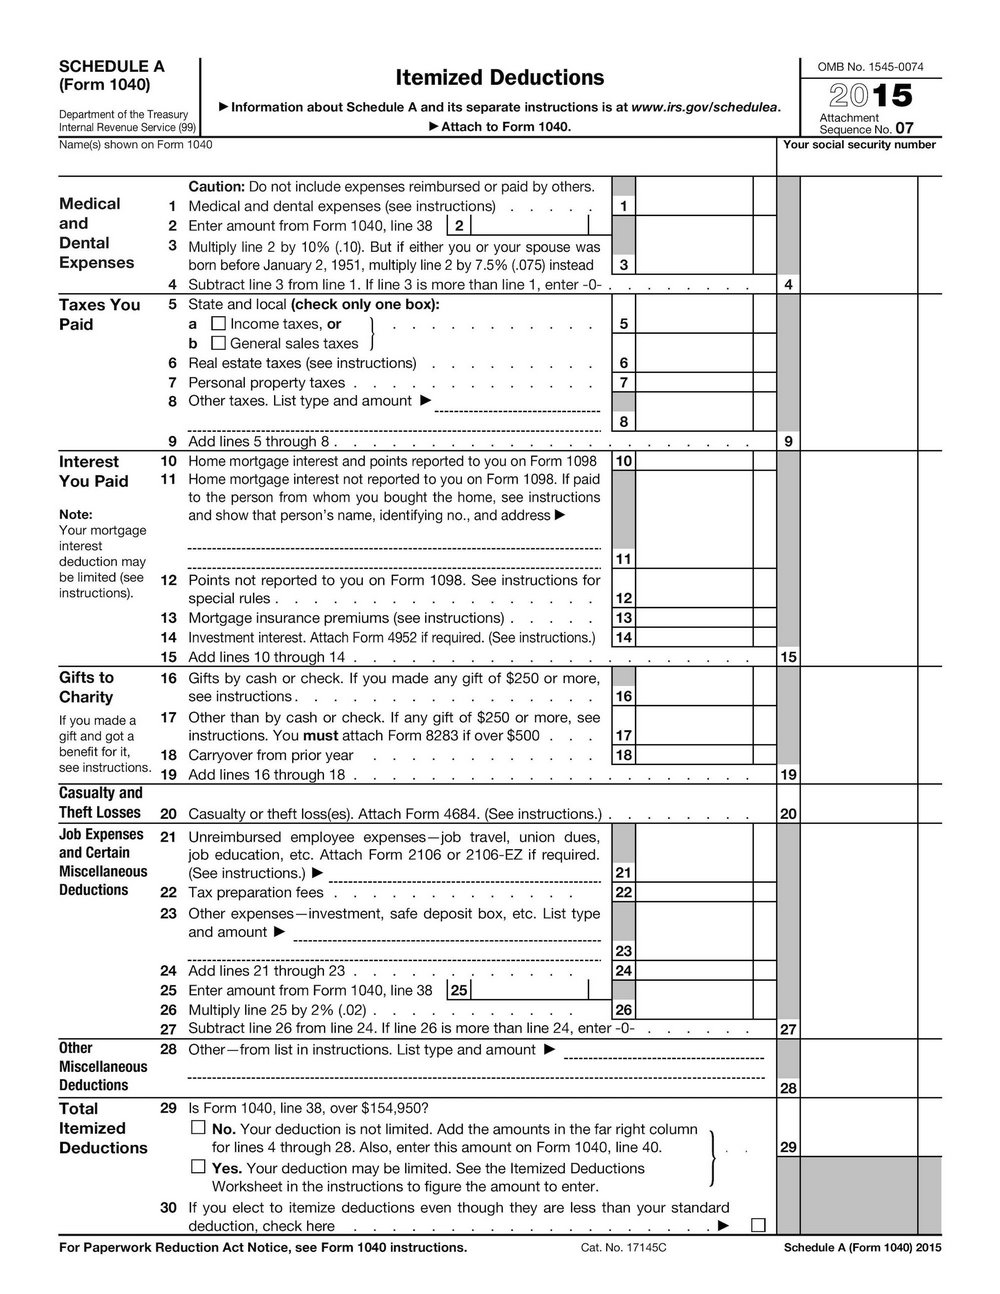 Roth Vs Traditional Ira Worksheet